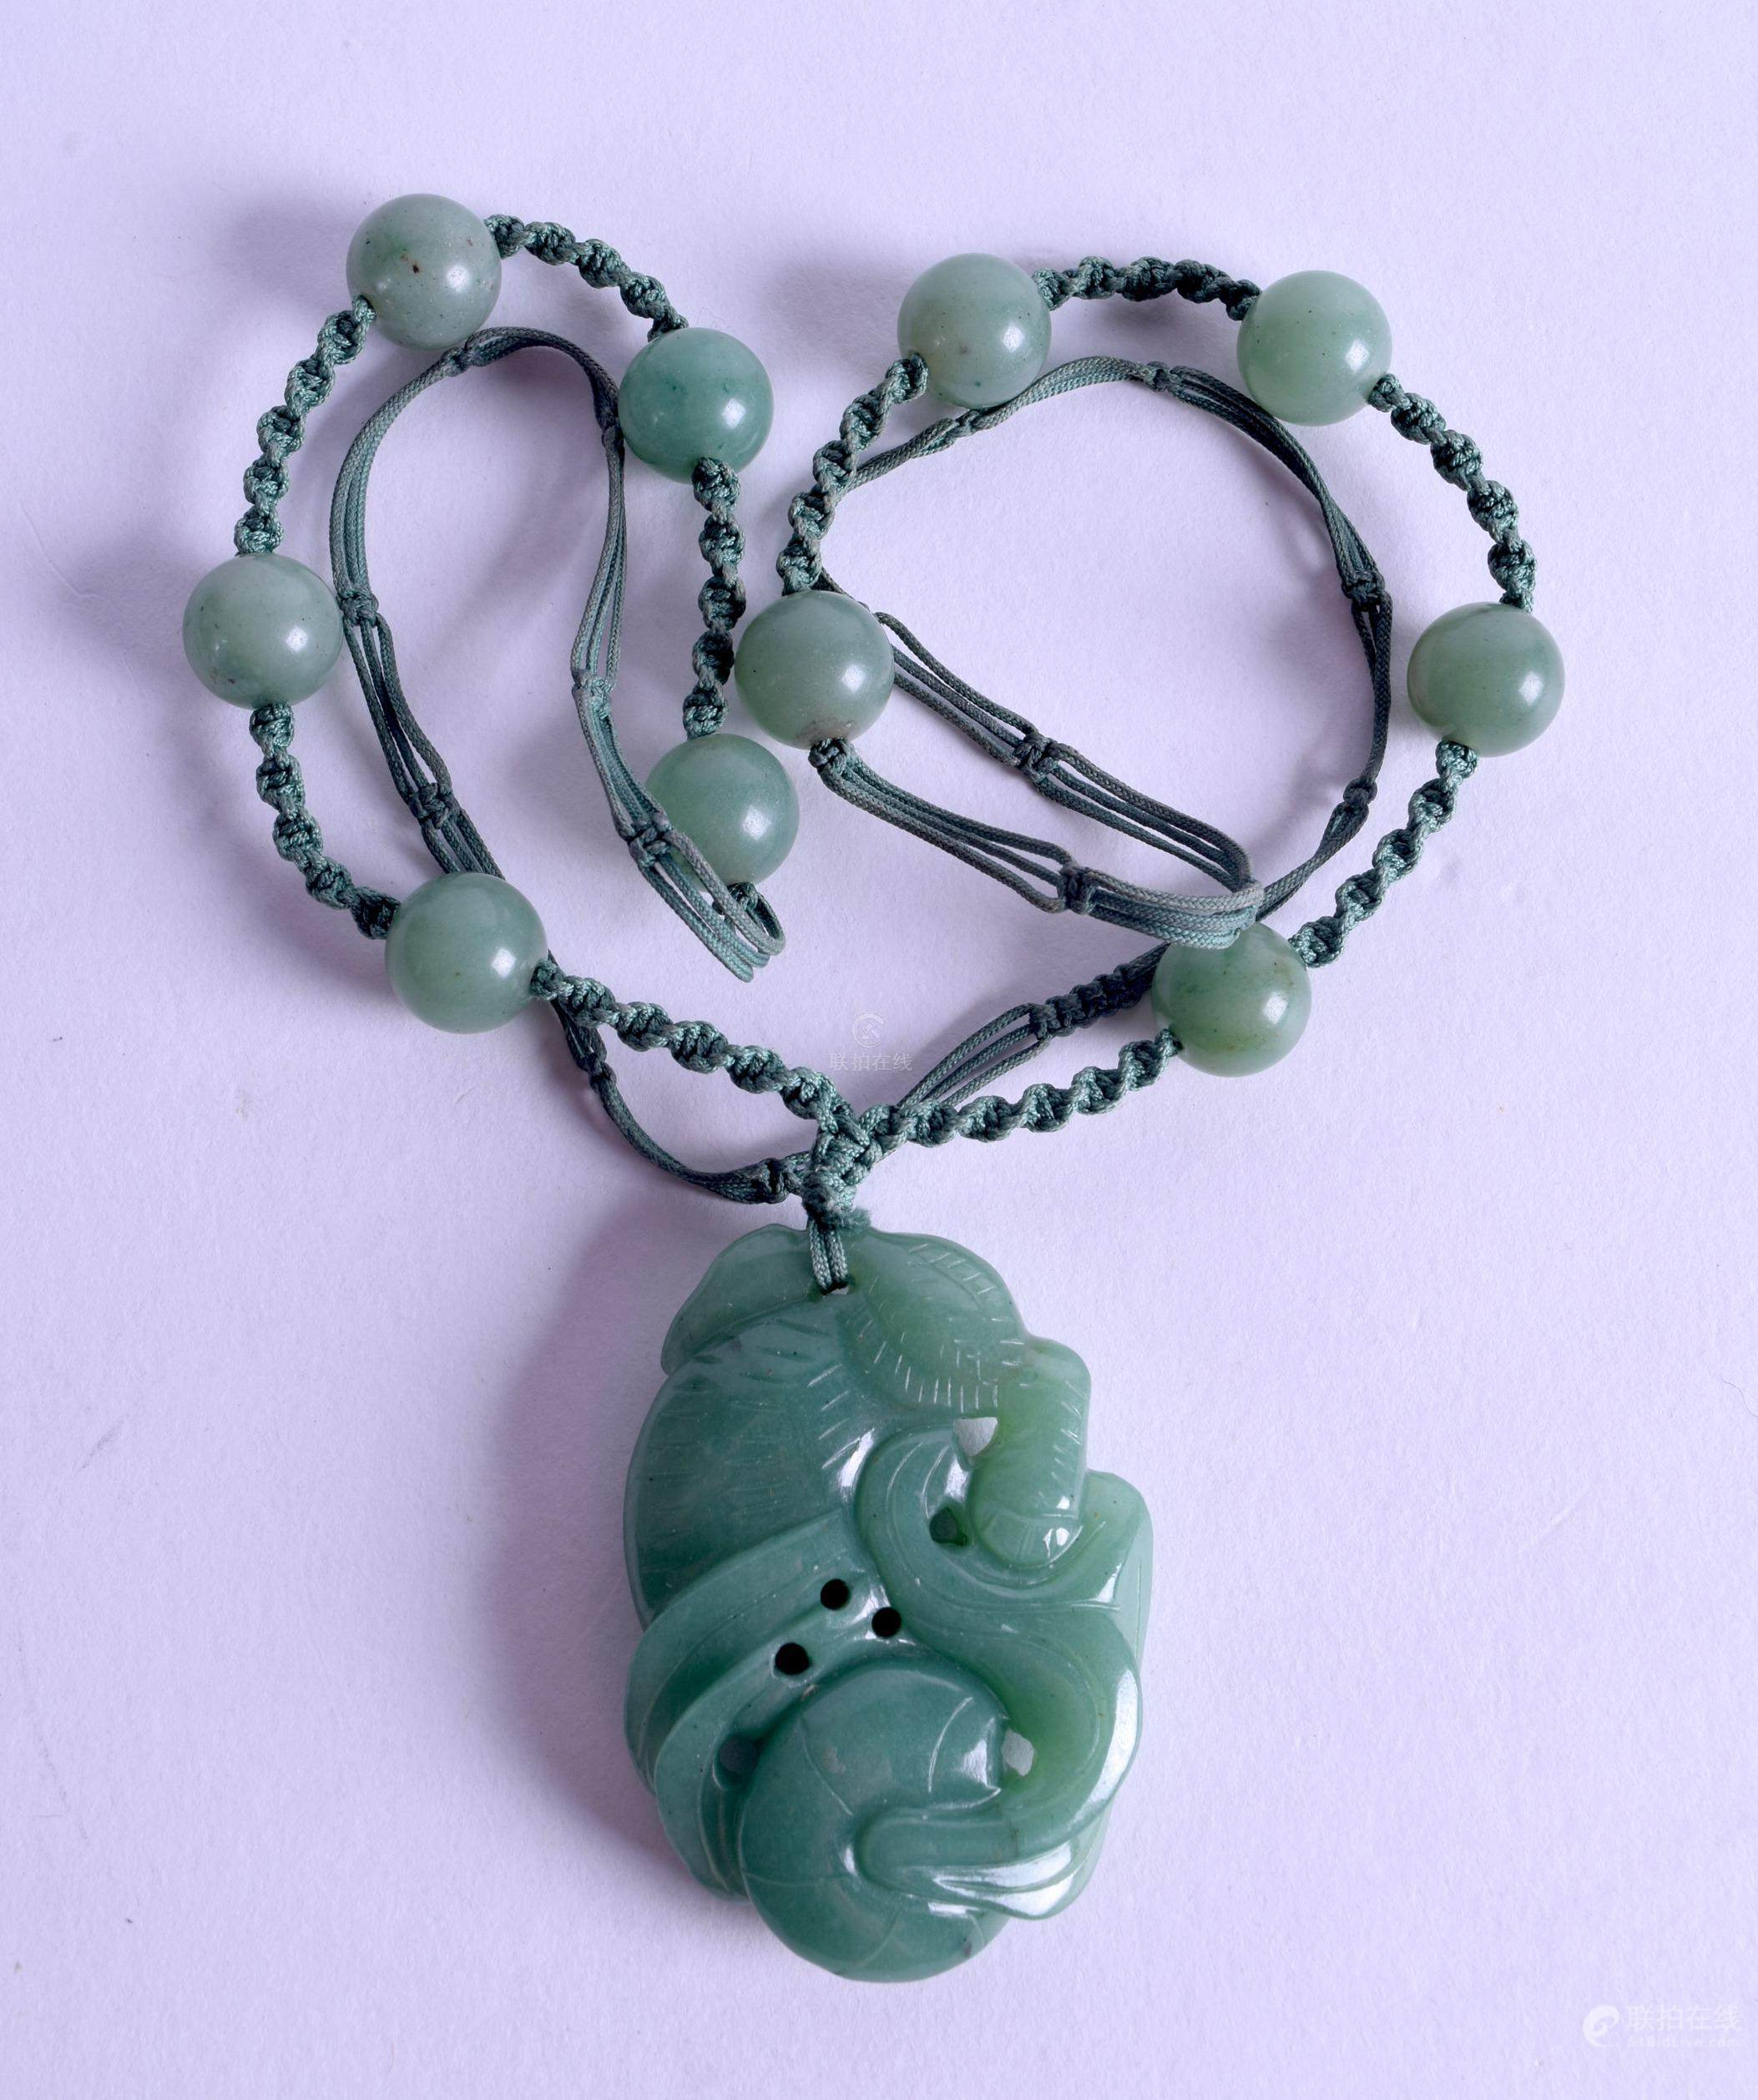 dragon amulet necklace jade statement meaningful fullxfull jewelry koip gift talisman yogi pendant bold il p oriental yoga carved